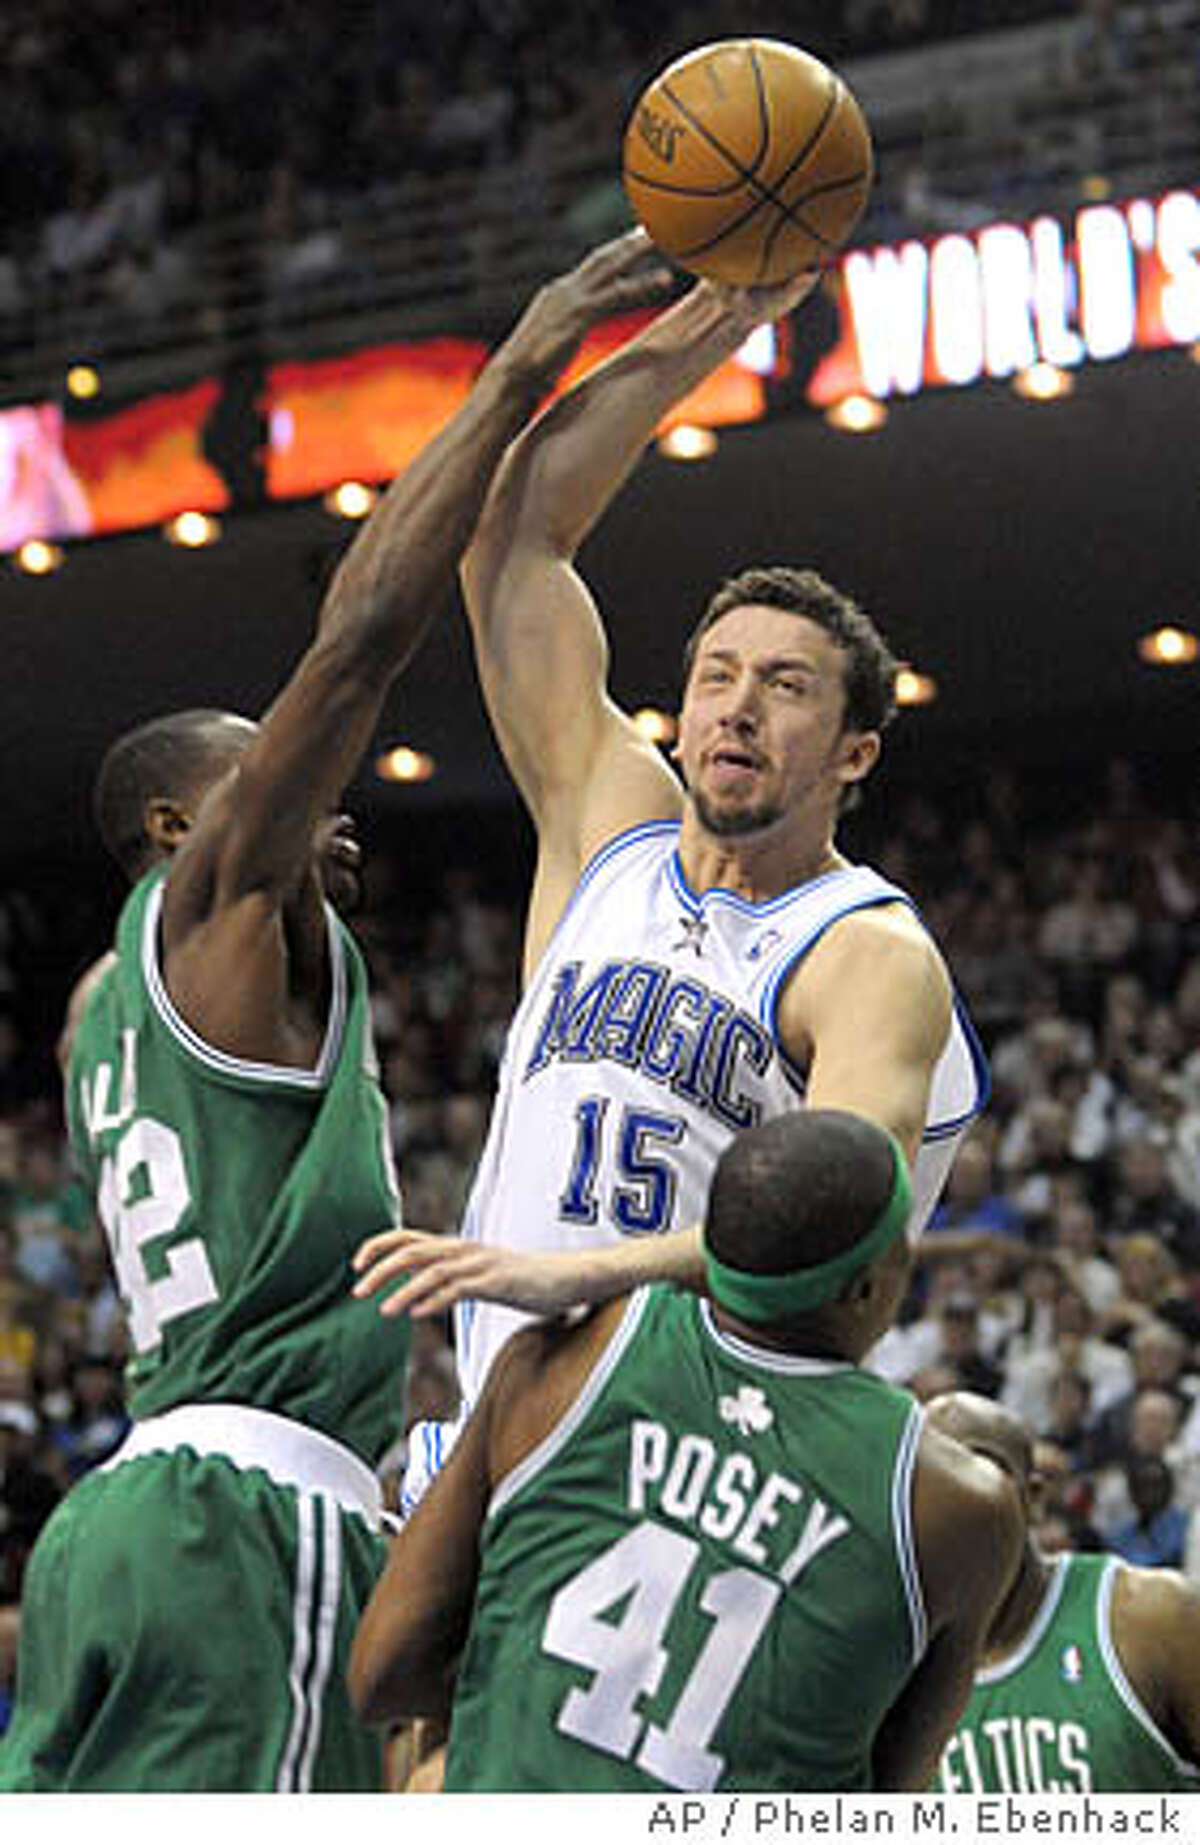 ** FILE ** Orlando Magic forward Hedo Turkoglu, center, of Turkey, puts up a shot over Boston Celtics forward James Posey (41) and Tony Allen, left, during the first half of an NBA basketball game in this file photo from Orlando, Fla., Sunday, Jan. 27, 2008. Turkoglu is in his eighth season in the league, and the 6-foot-10 forward is a back reason why the Magic have become one of the Eastern Conference's top team. (AP Photo/Phelan M. Ebenhack,file)